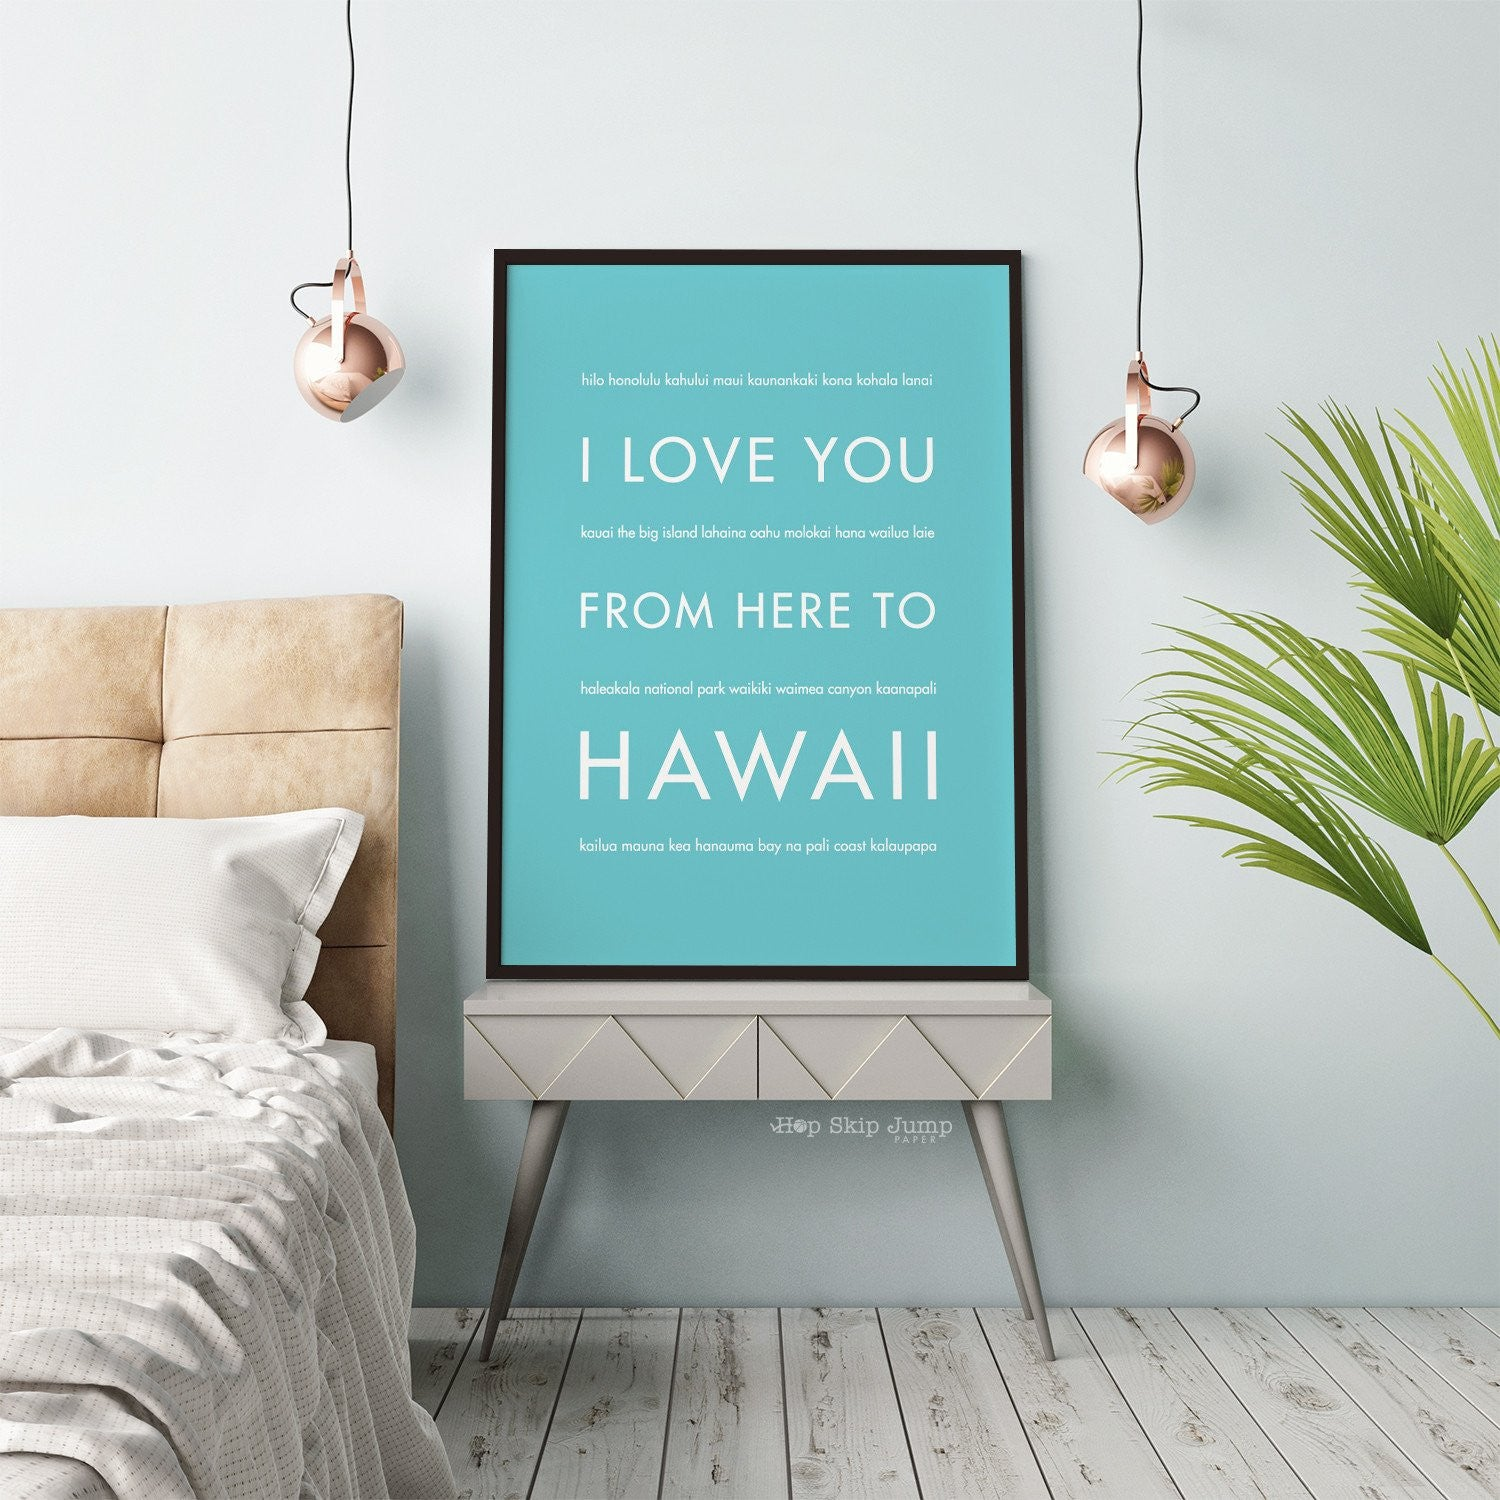 HAWAII Vacation Wall Art | Gift Idea | HopSkipJumpPaper  - Shop Online